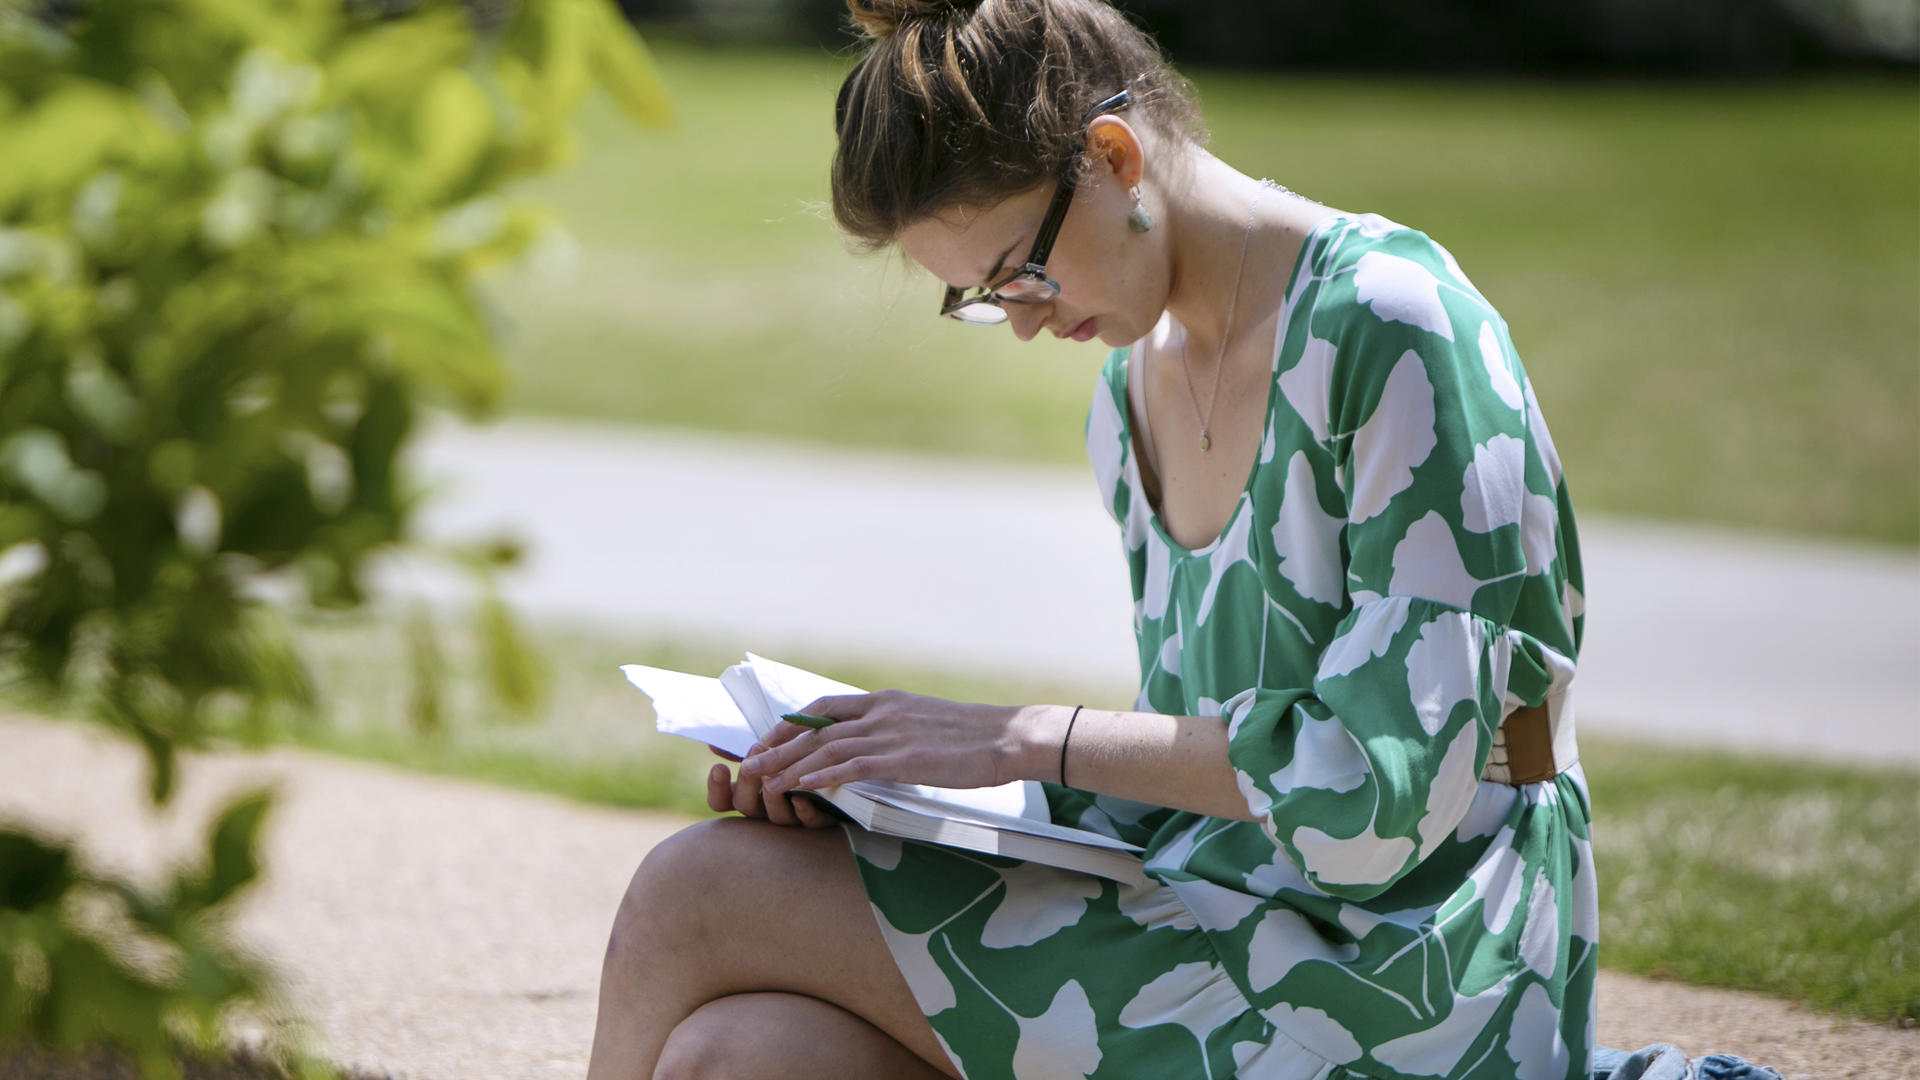 A young woman with glasses in a green dress sits at the top of a stone ampitheatre reading a book.